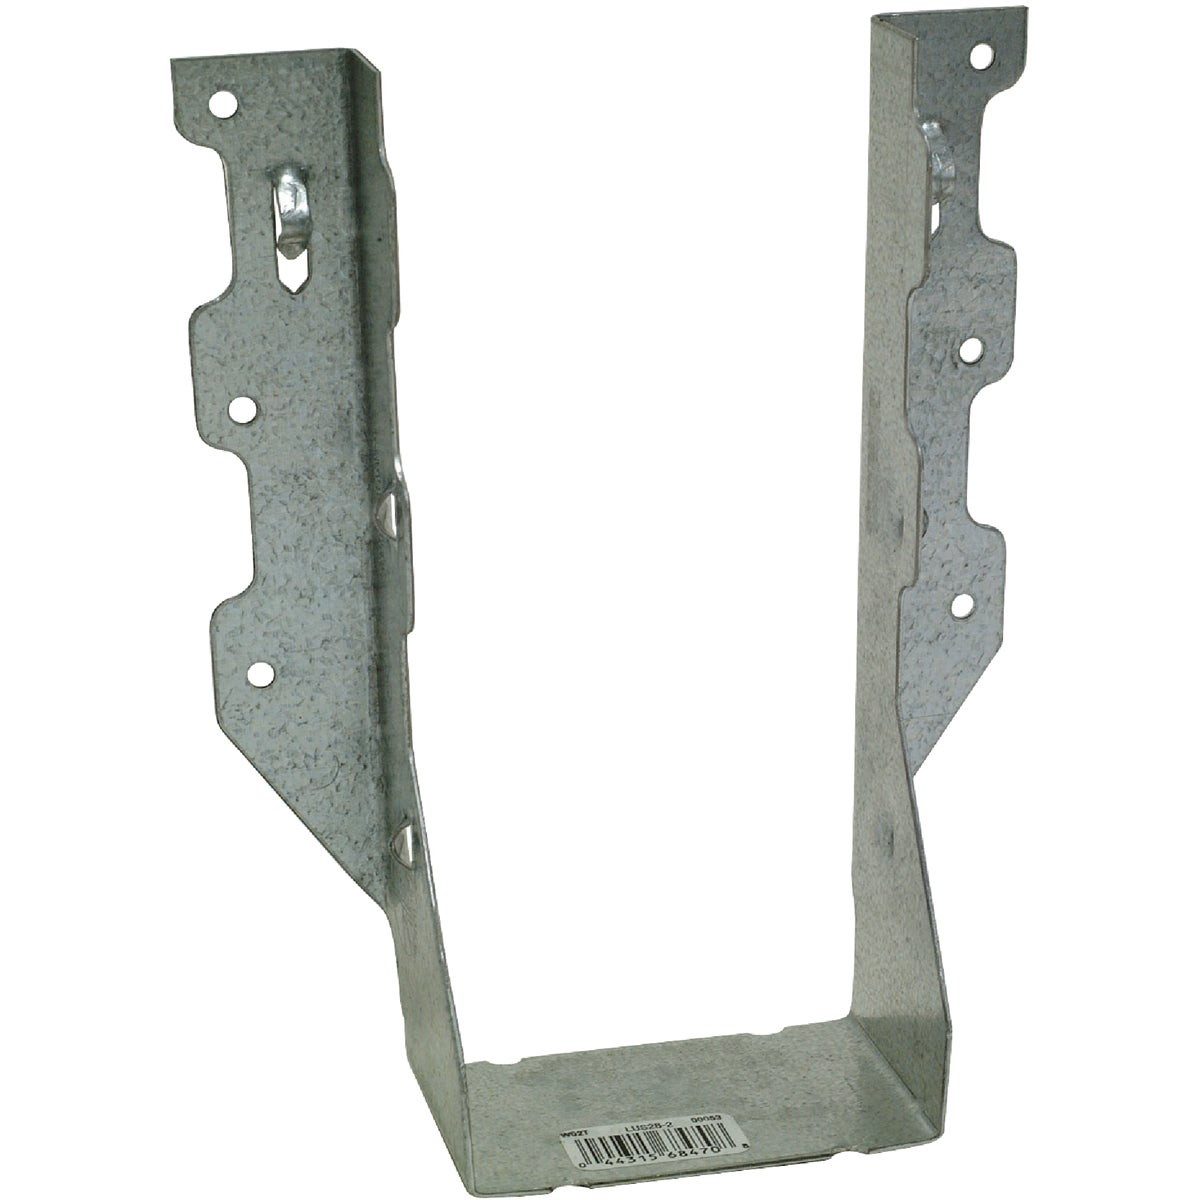 Simpson Strong-Tie 2X8 DOUBLE JOIST HANGER LUS28-2